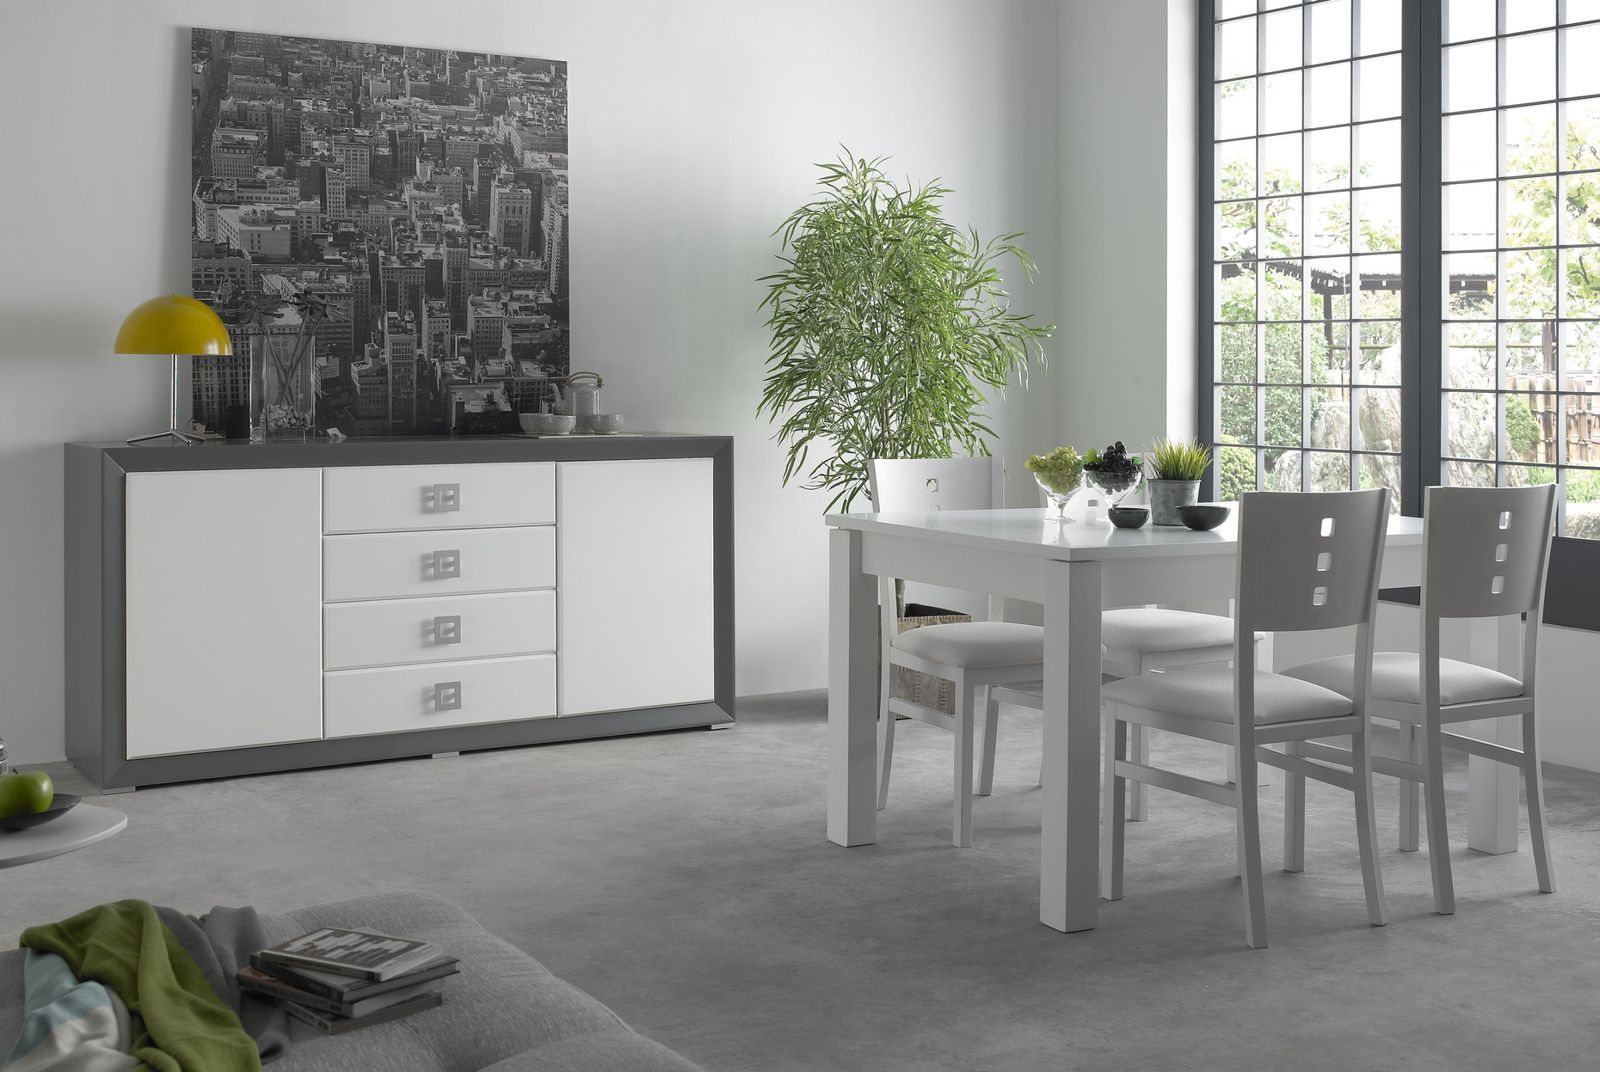 Album meubles laques exodia home design tables ceramique canapes salons - Meuble de salon modulable ...